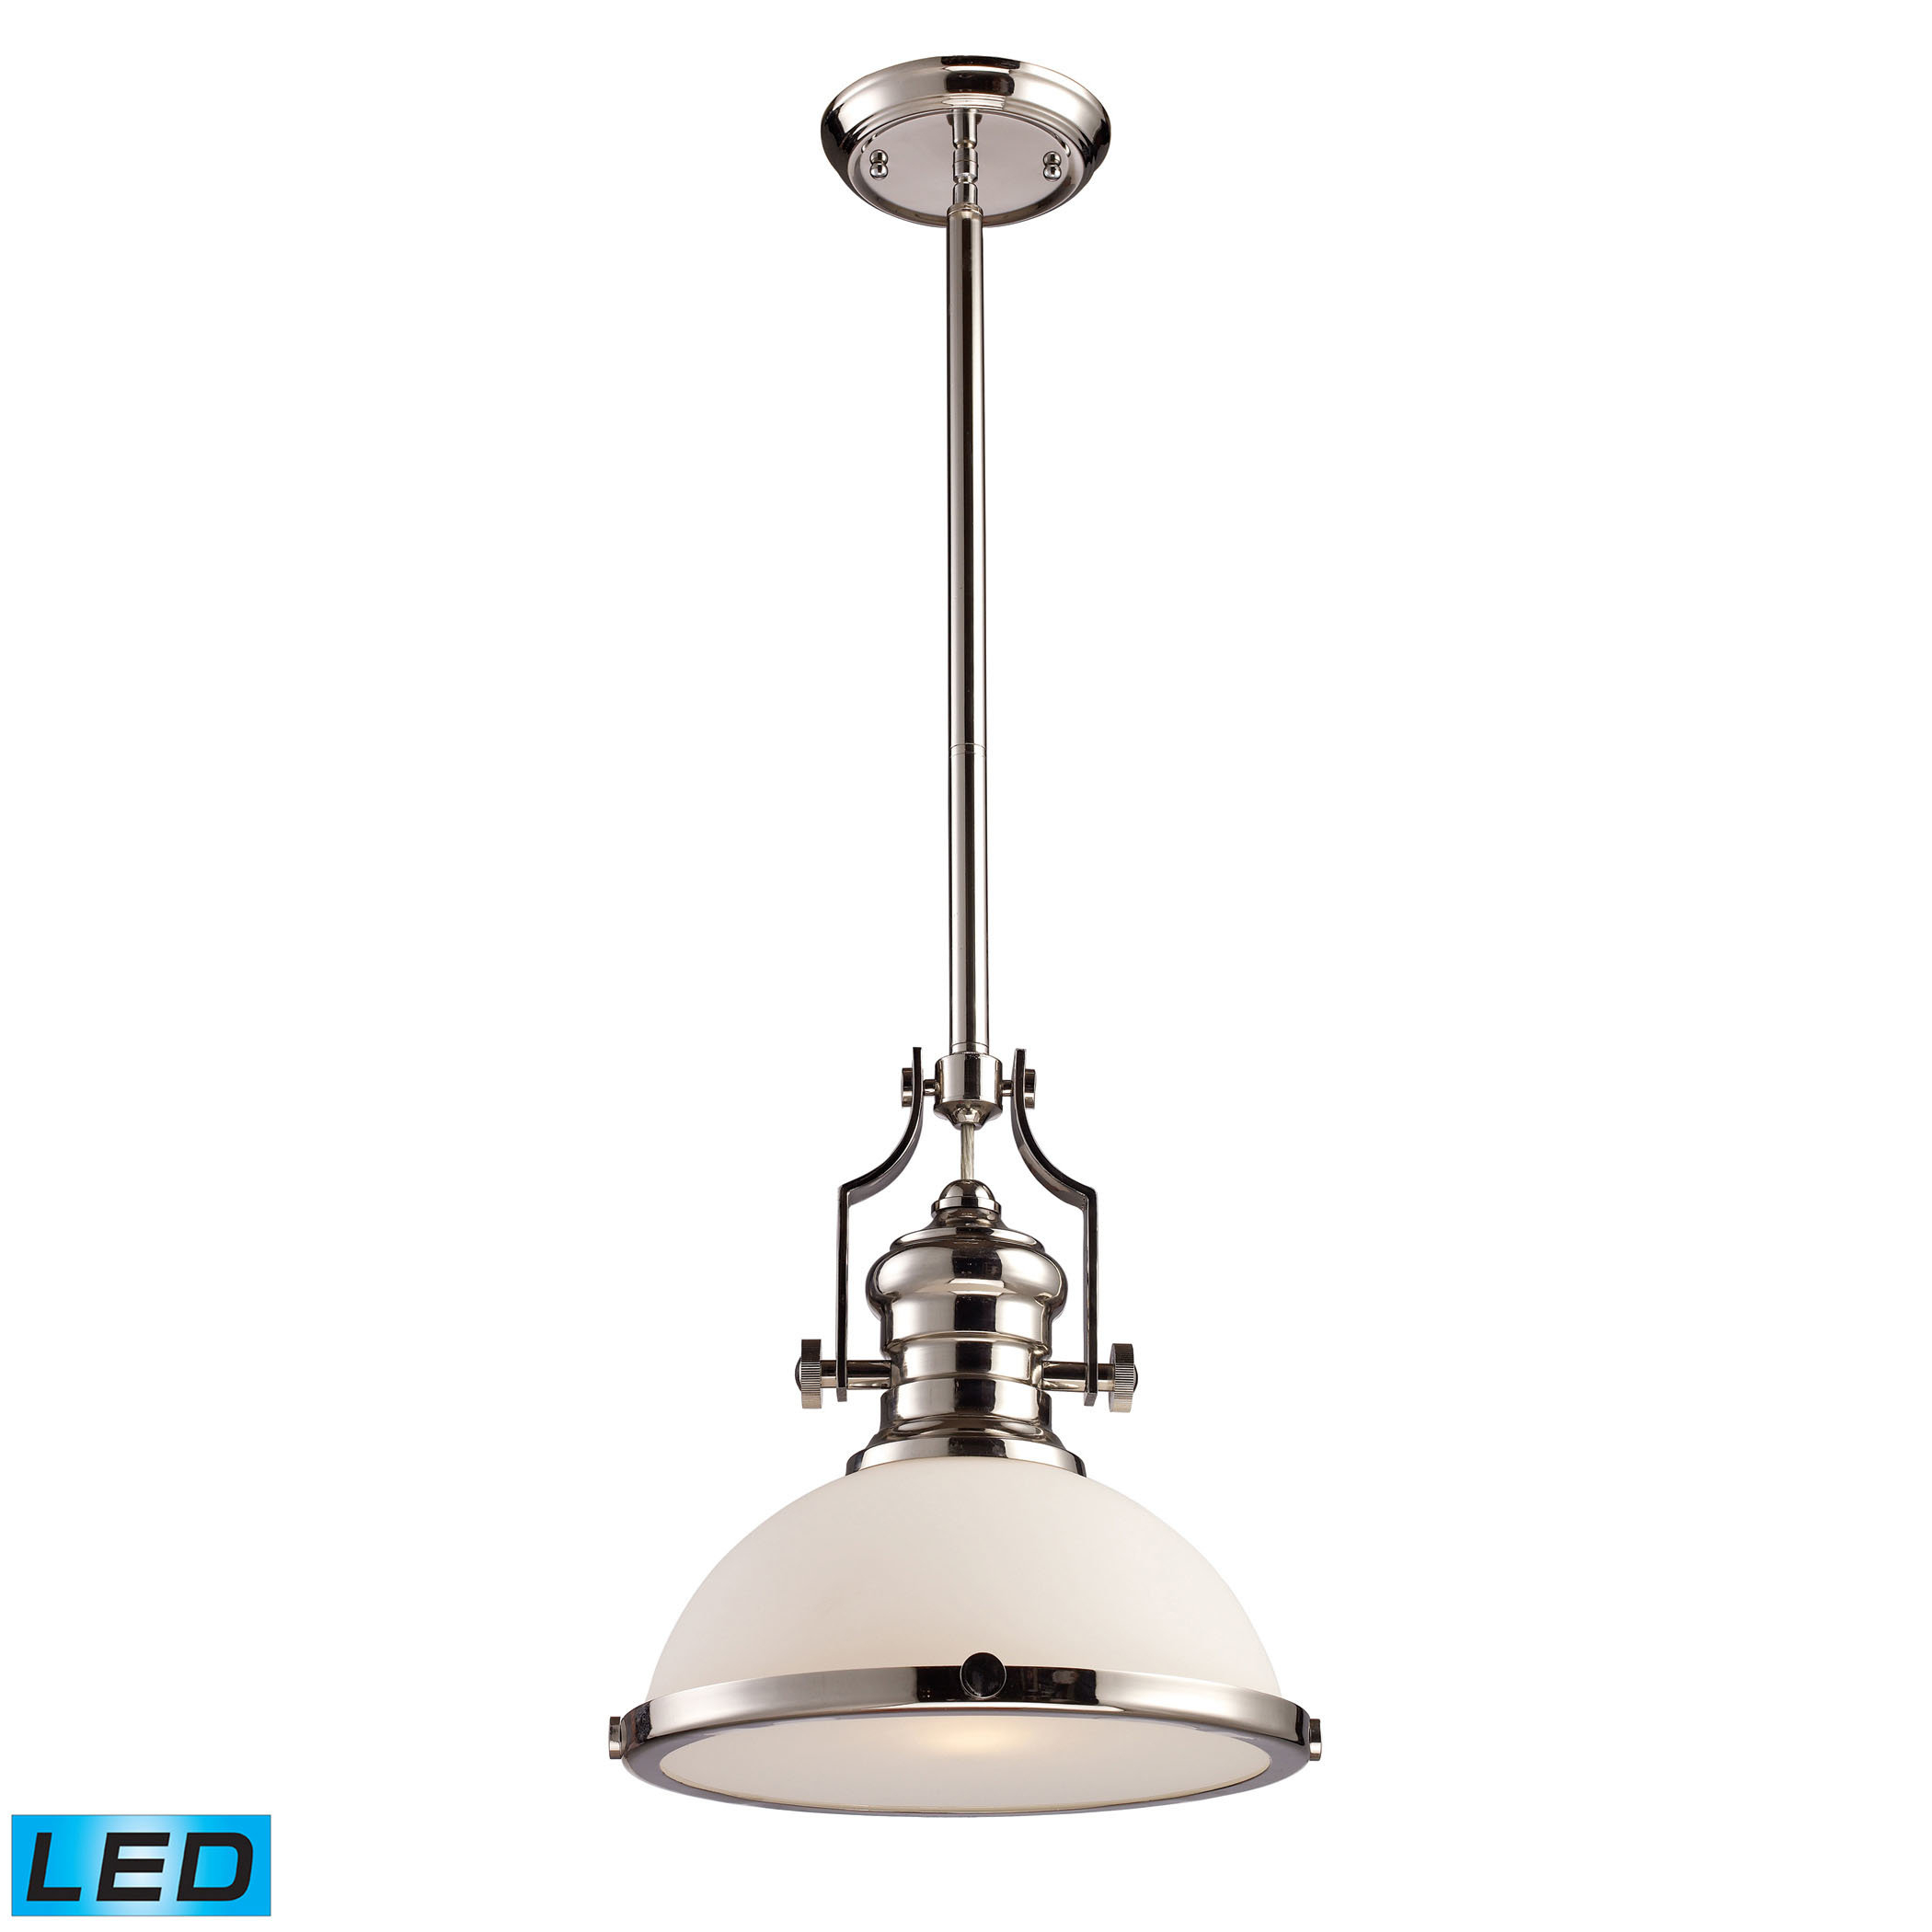 Priston 1 Light Single Dome Pendant Throughout Priston 1 Light Single Dome Pendants (View 24 of 30)